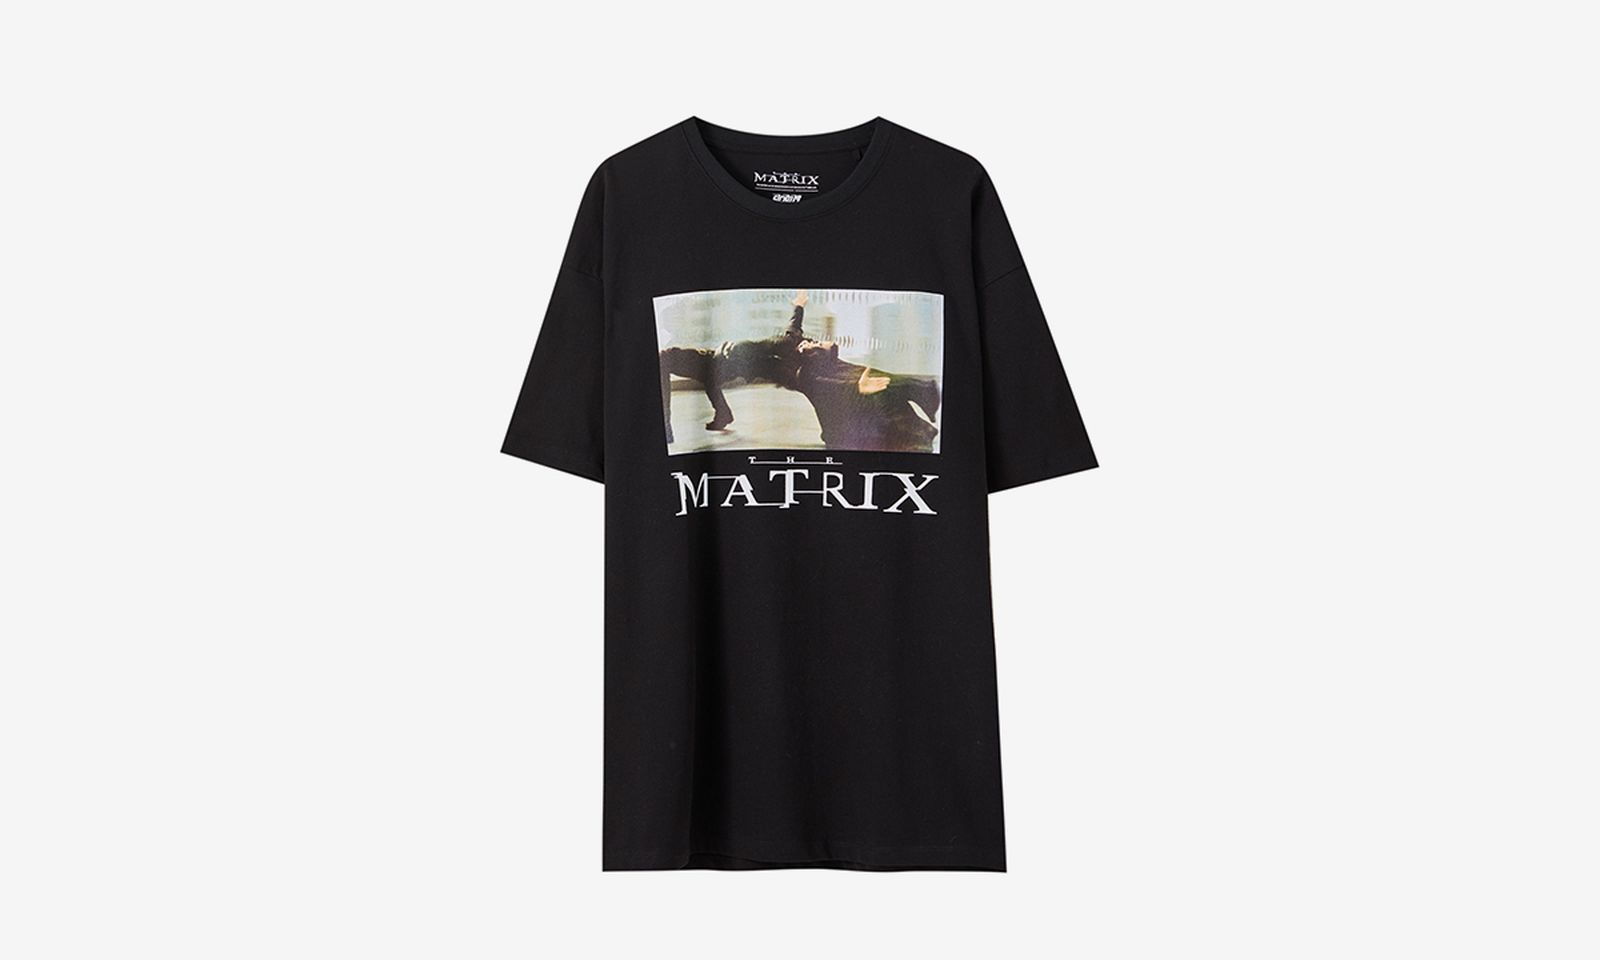 pull-and-bear-the-matrix-collection-12